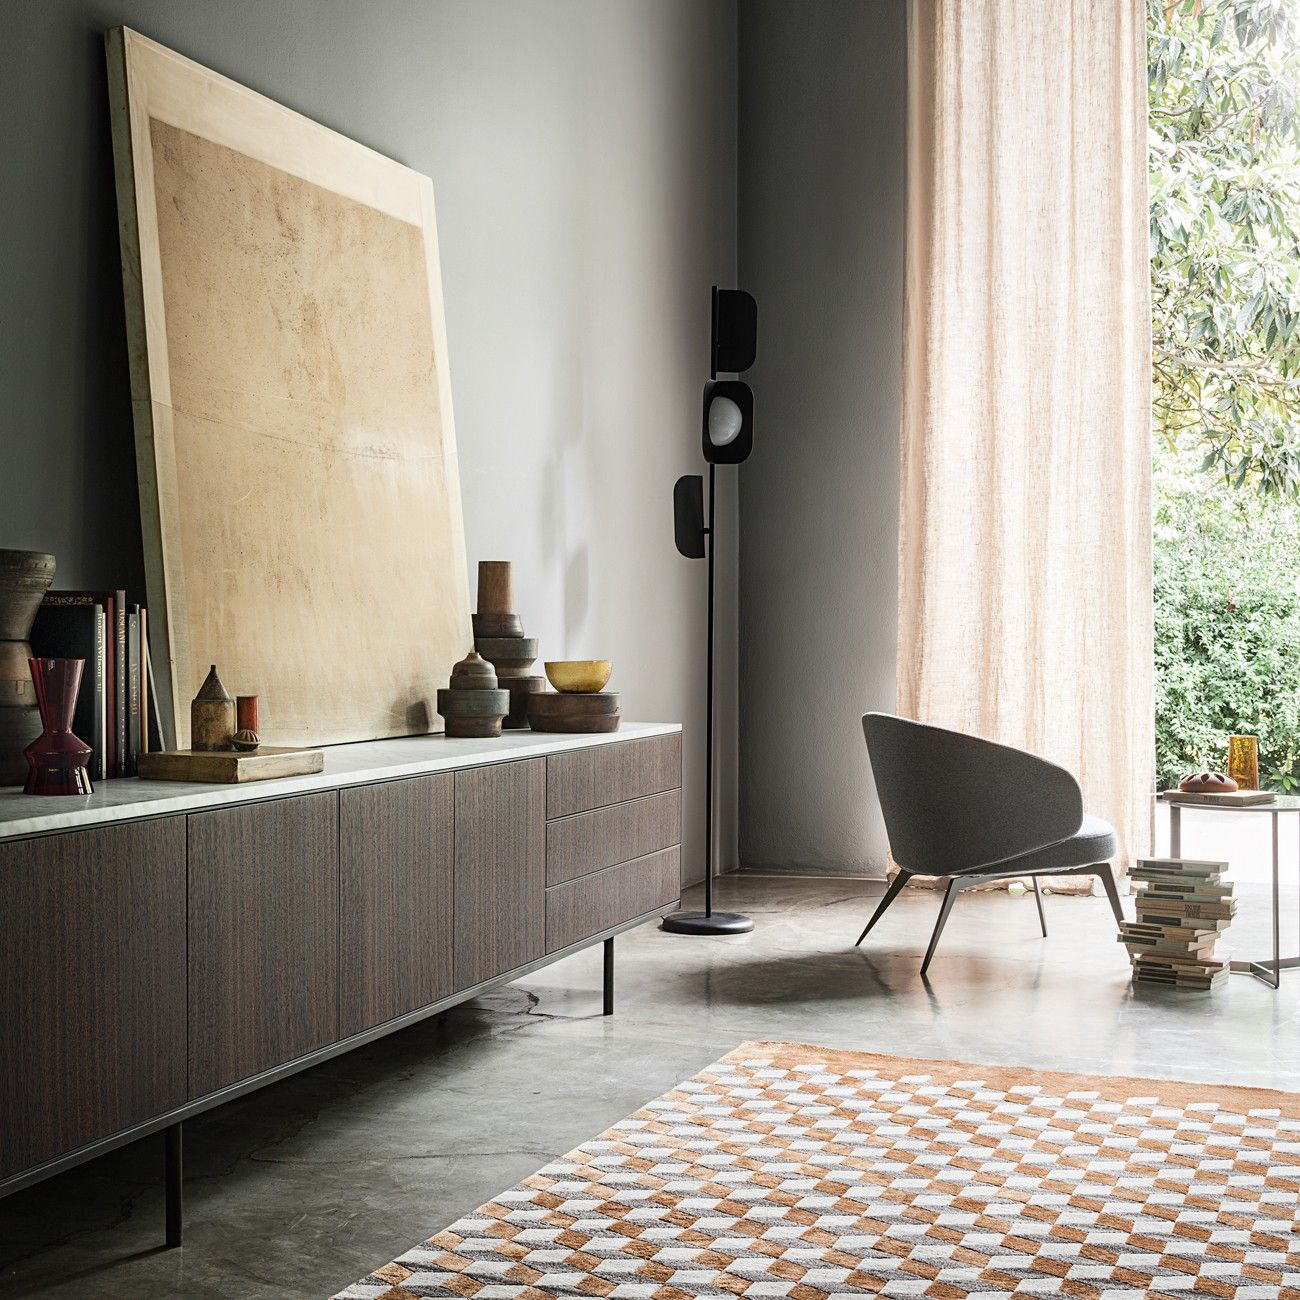 The French Vintage Inspired Long Island Sideboard Will Become The Hero Of  Any Living Room. Designed By Christophe Pillet For Lema, Long Island Is A  Classic, ... Part 40